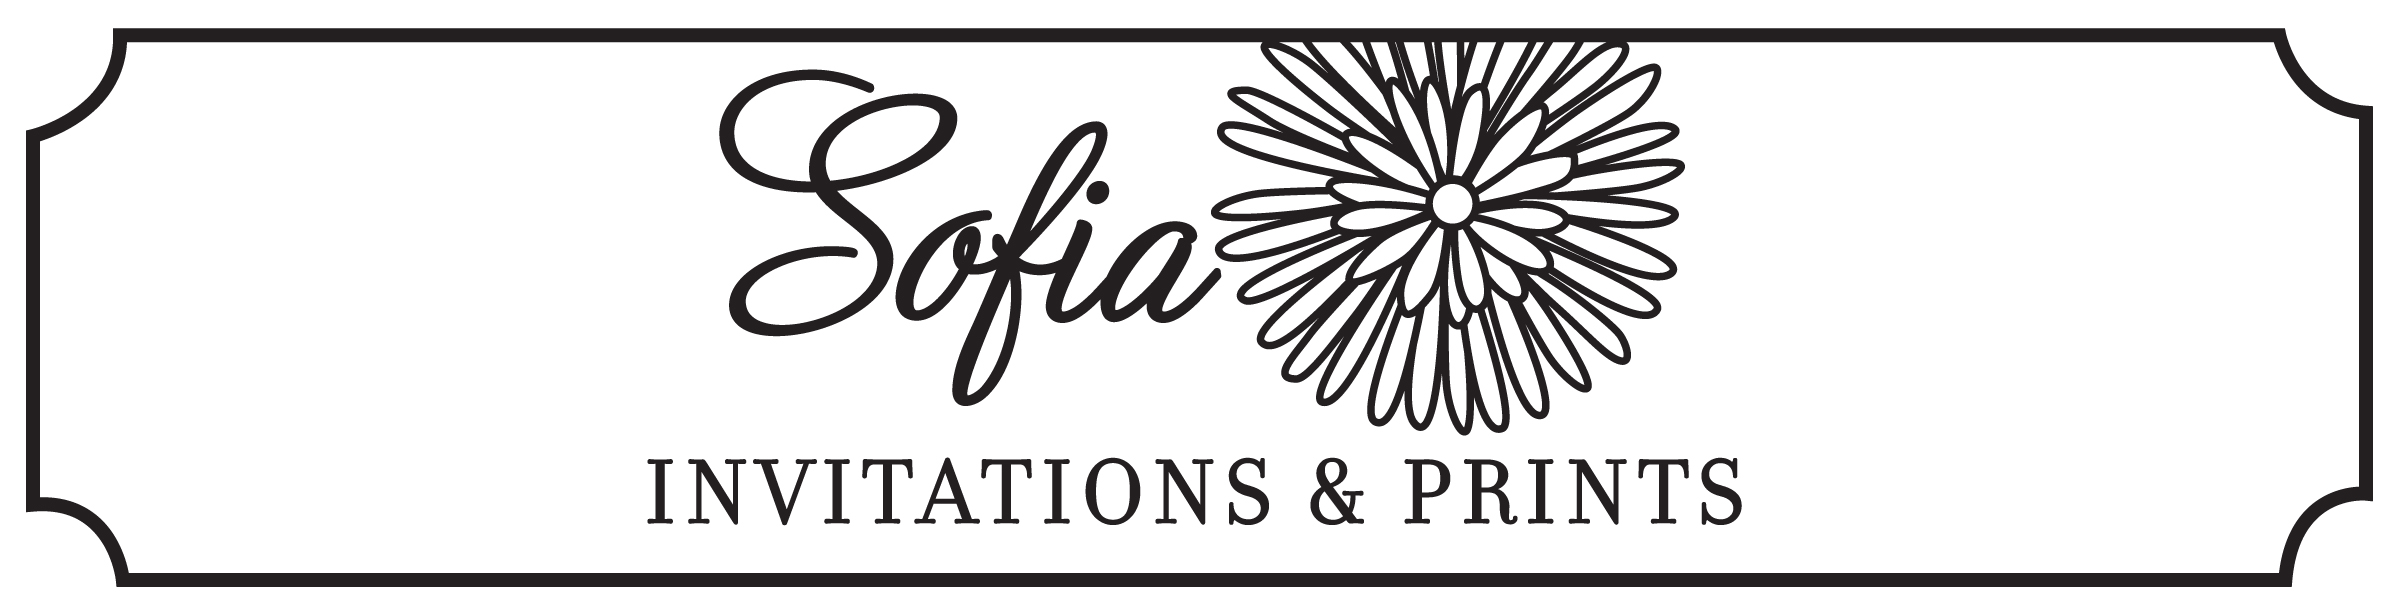 Sofia Invitations Blog Just Another Site